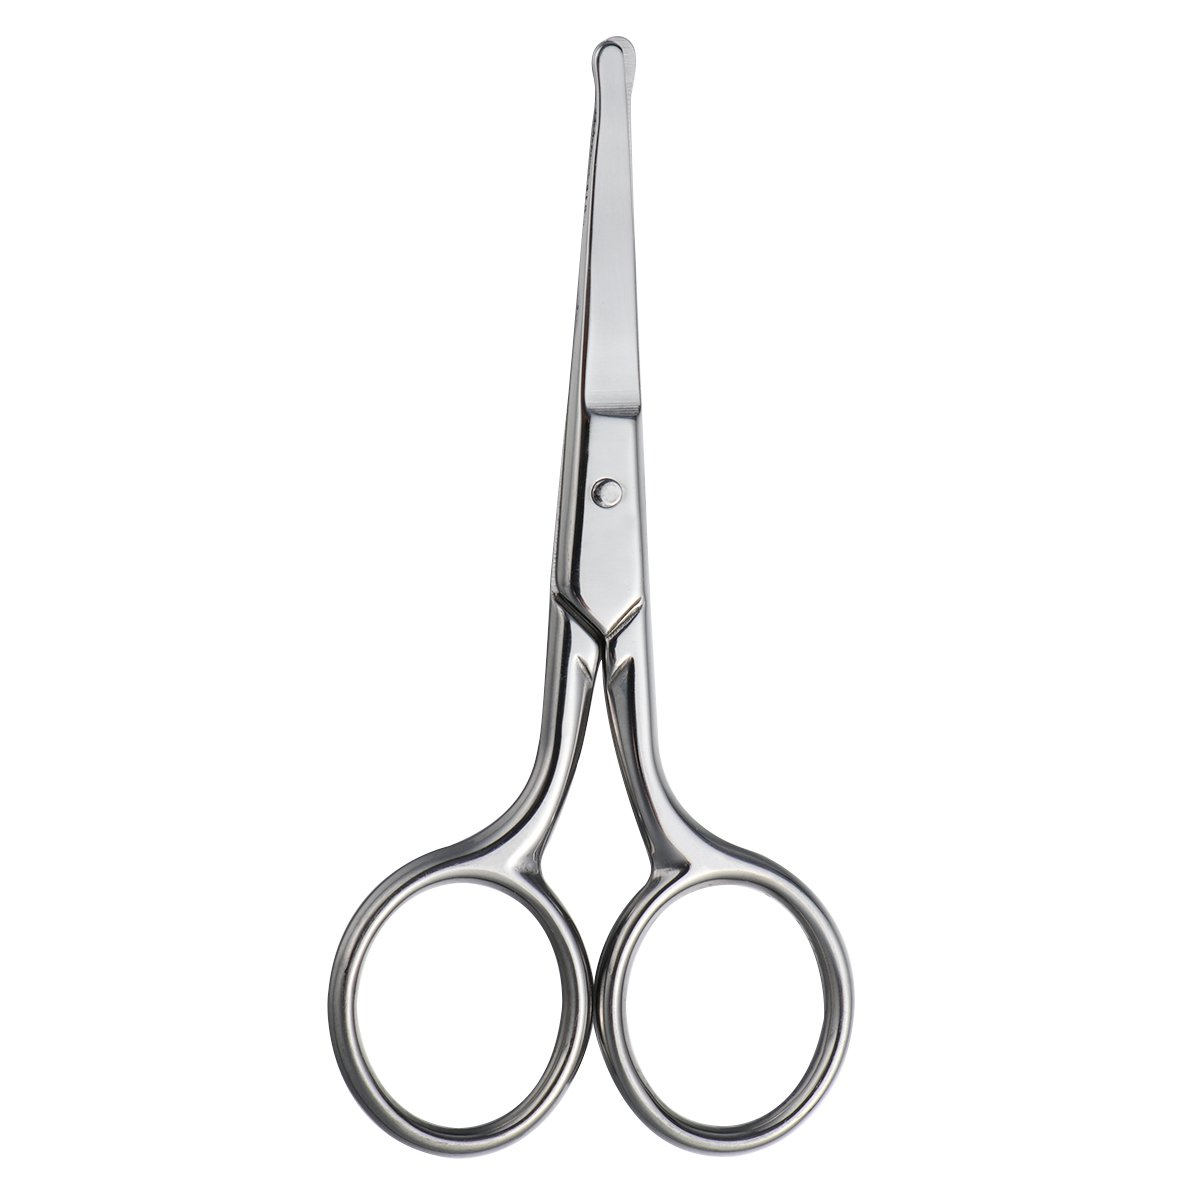 ROSENICE Nose Hair Scissors Safety Scissor with Round Tip for Facial Hair Eyebrow Beard Mustache